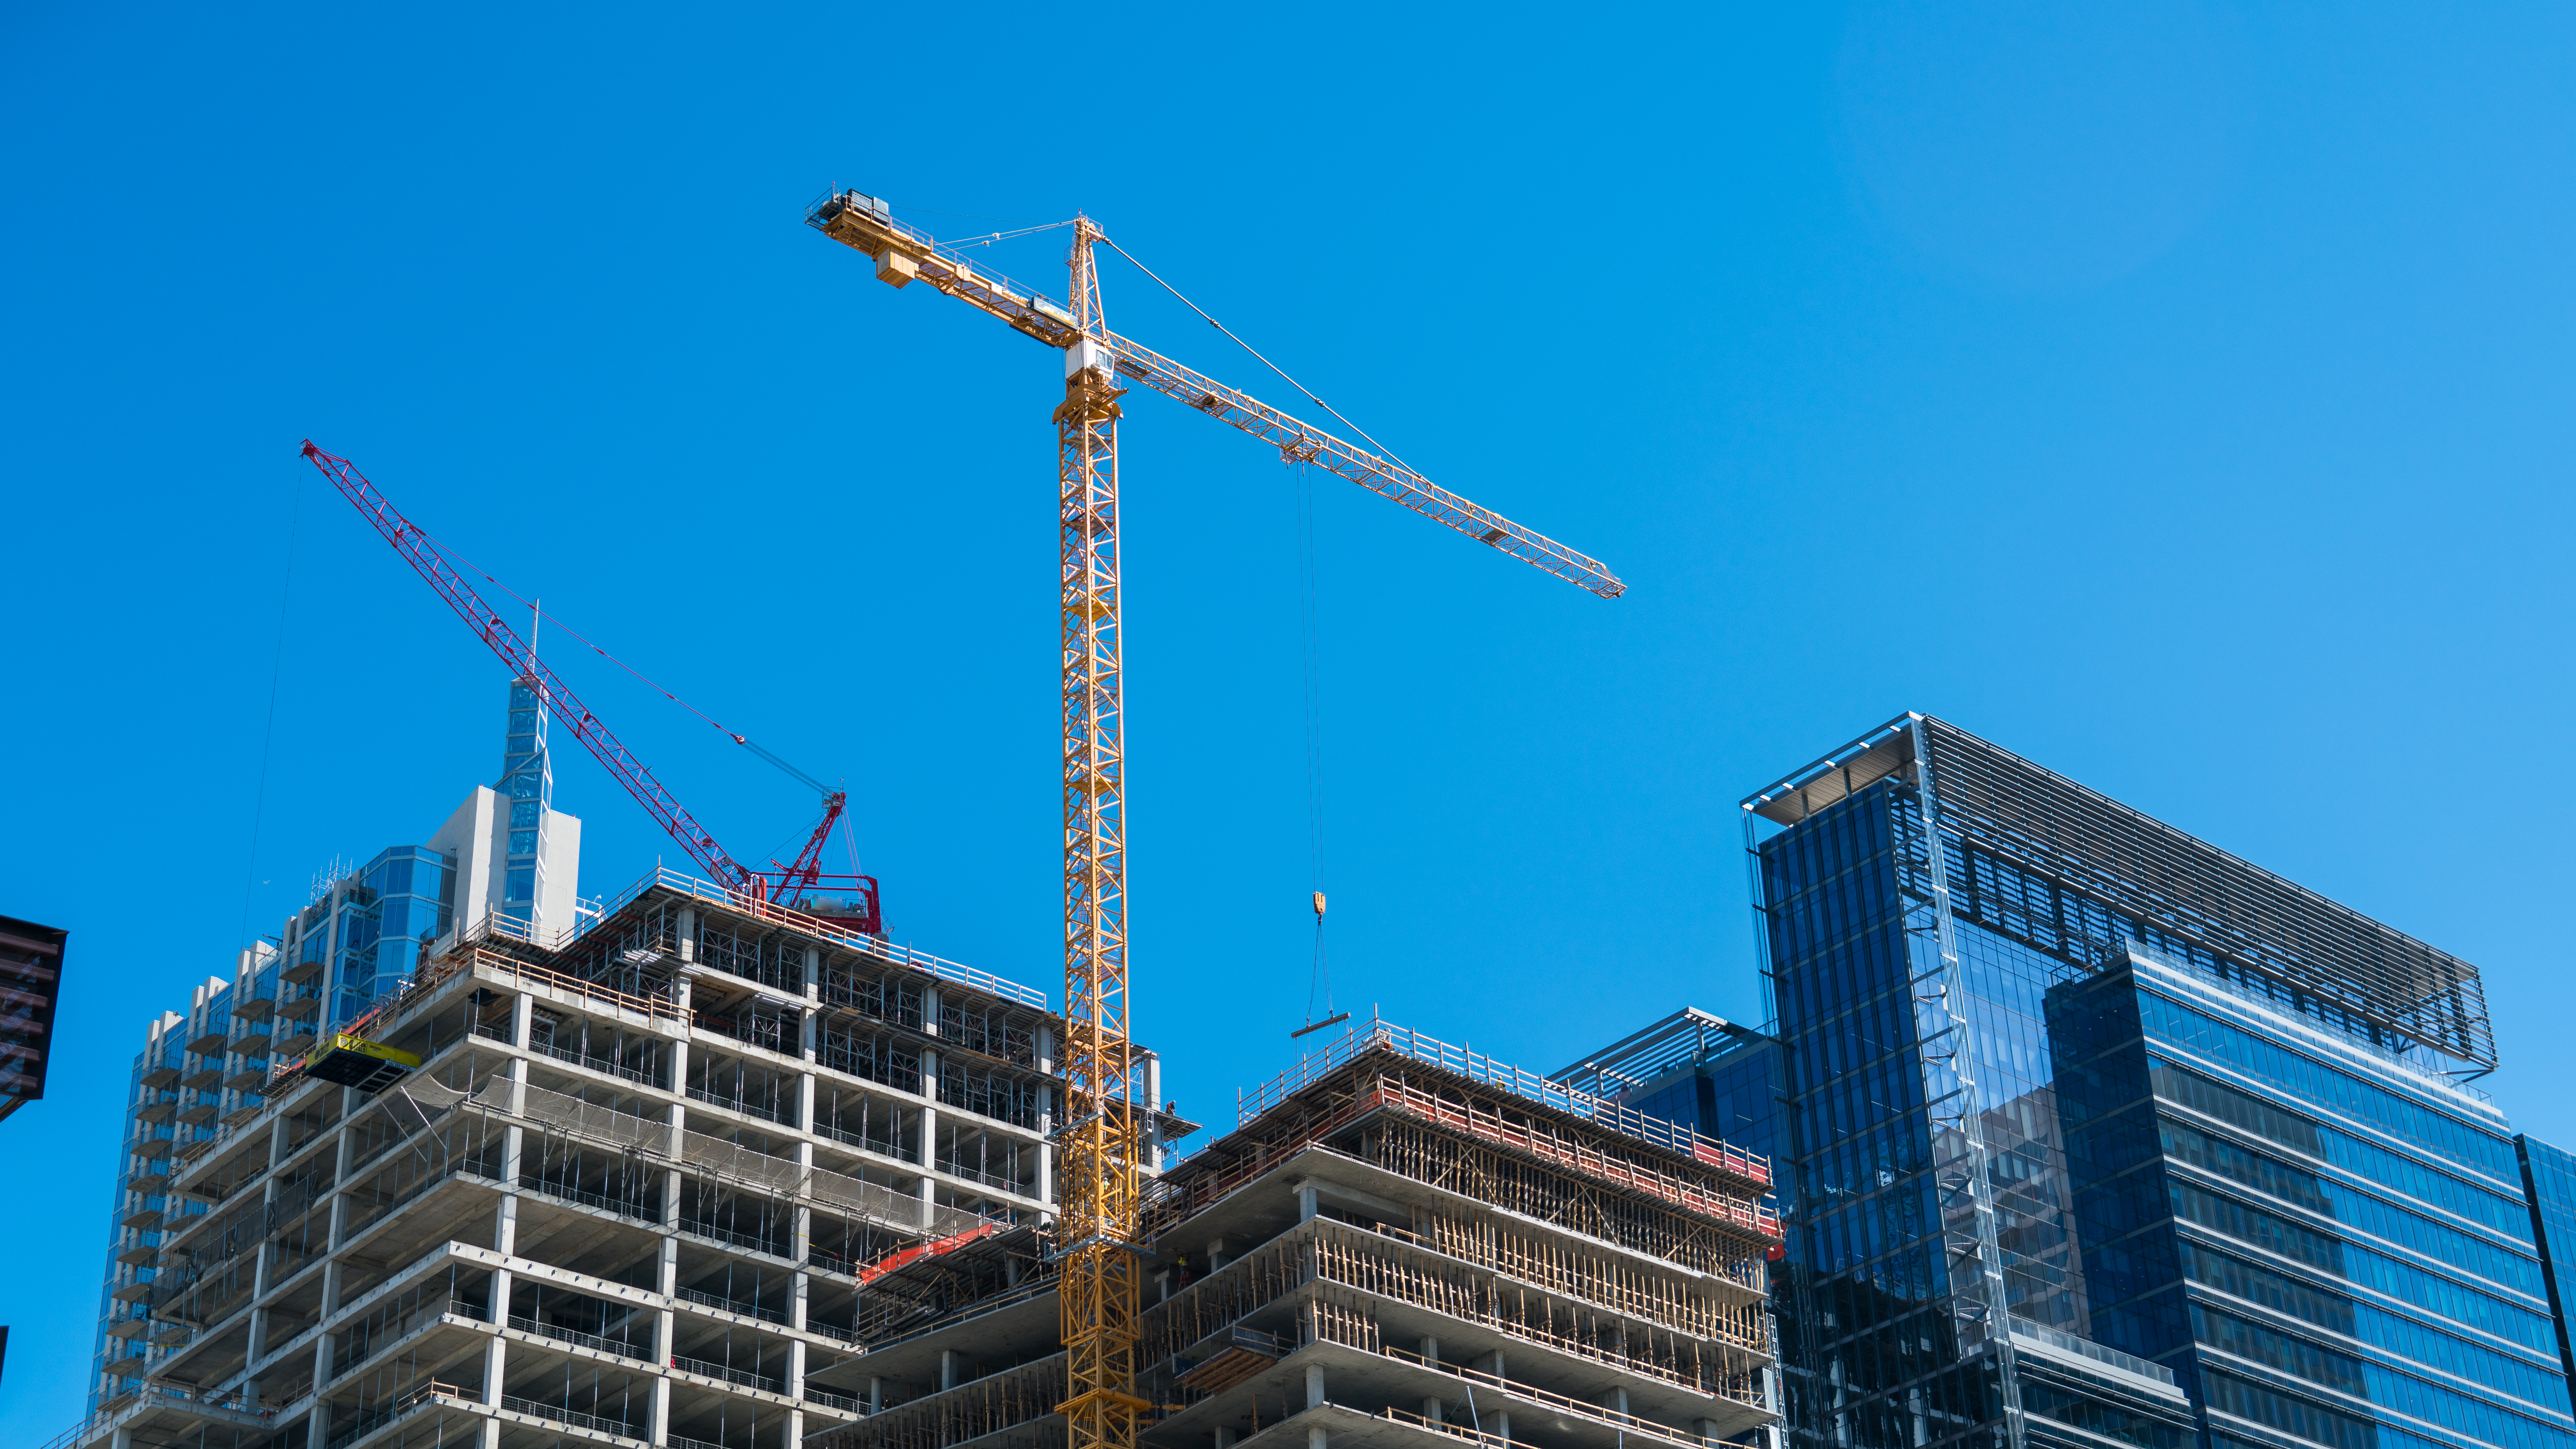 Perfect blue sky day rising modern architecture development Austin Texas Cranes and new Downtown Construction Highrises